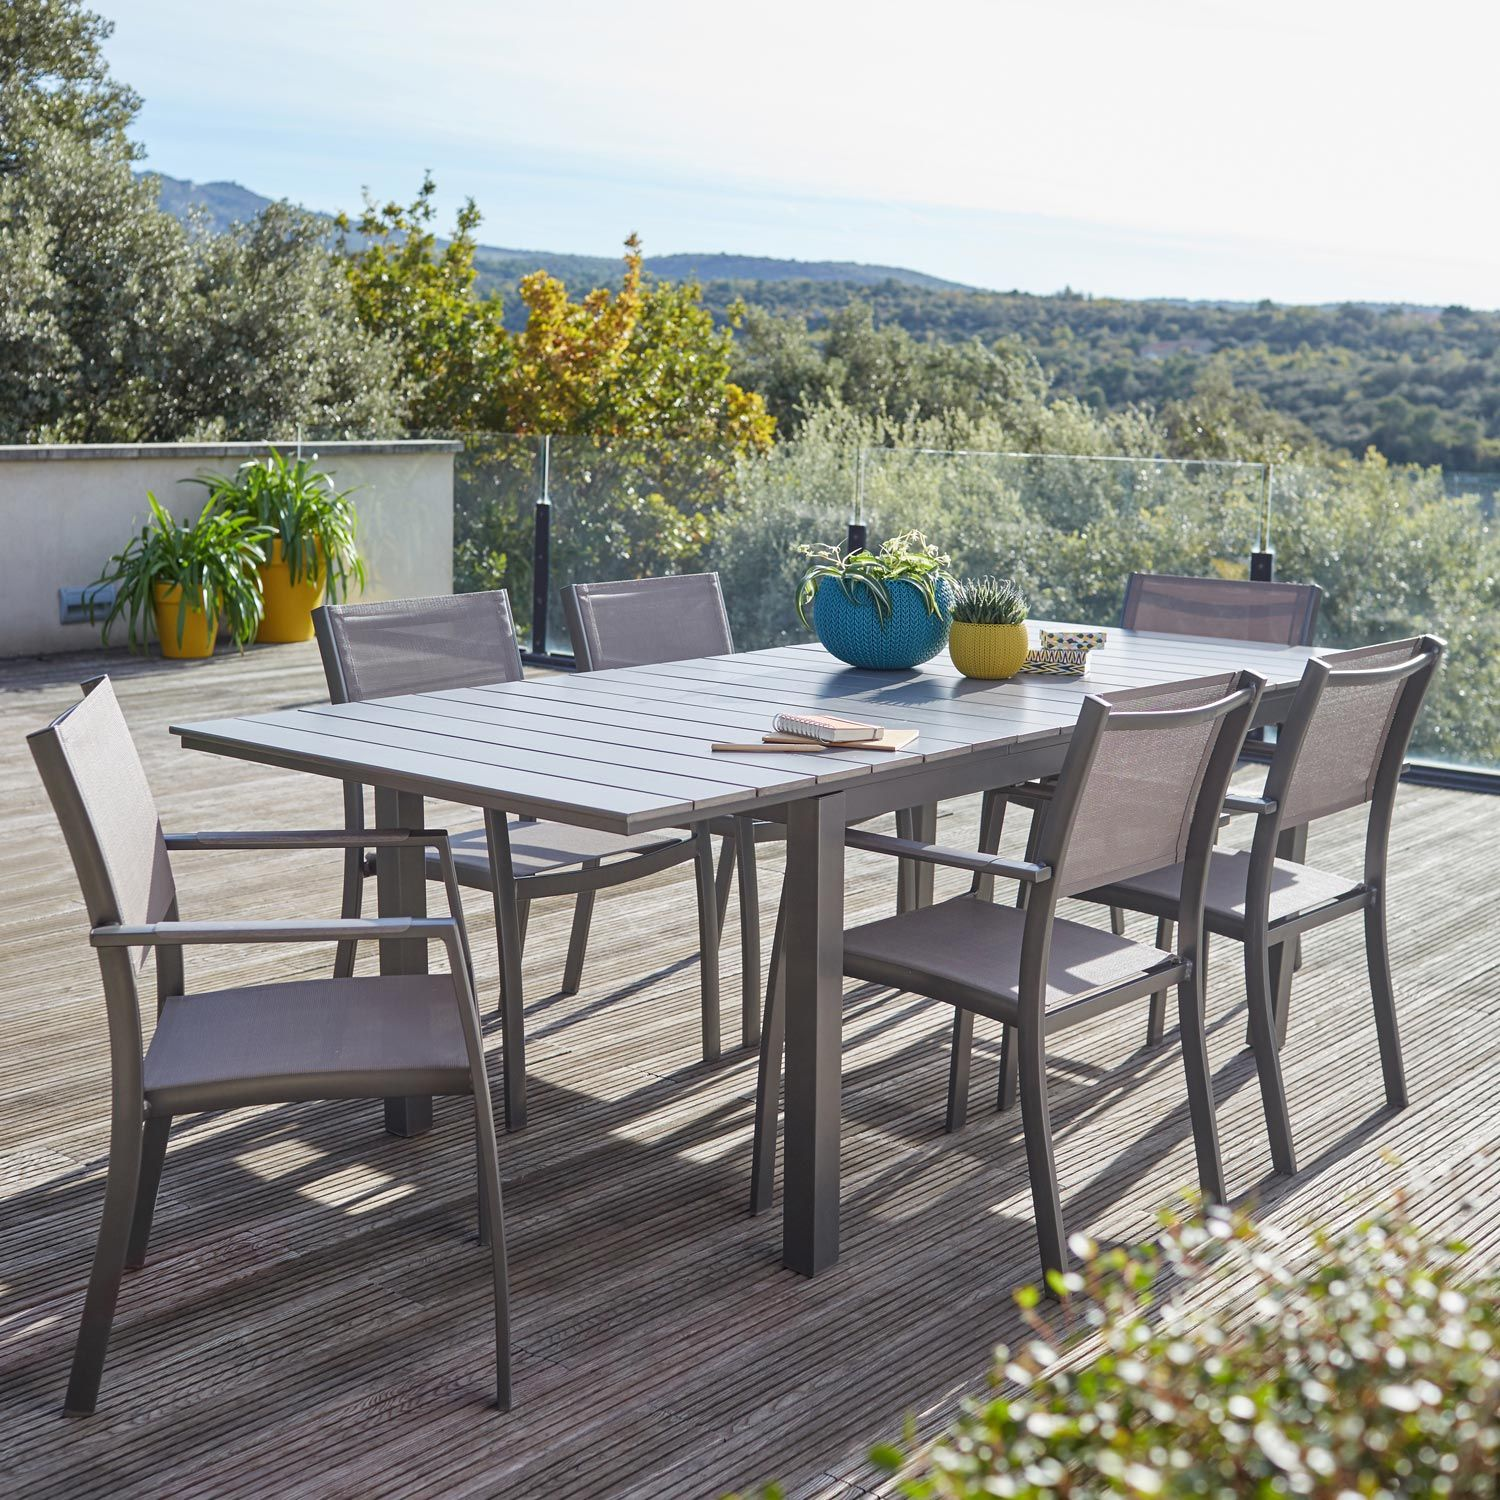 de resine exterieur table Magasin salon jardin A5qRcj34L